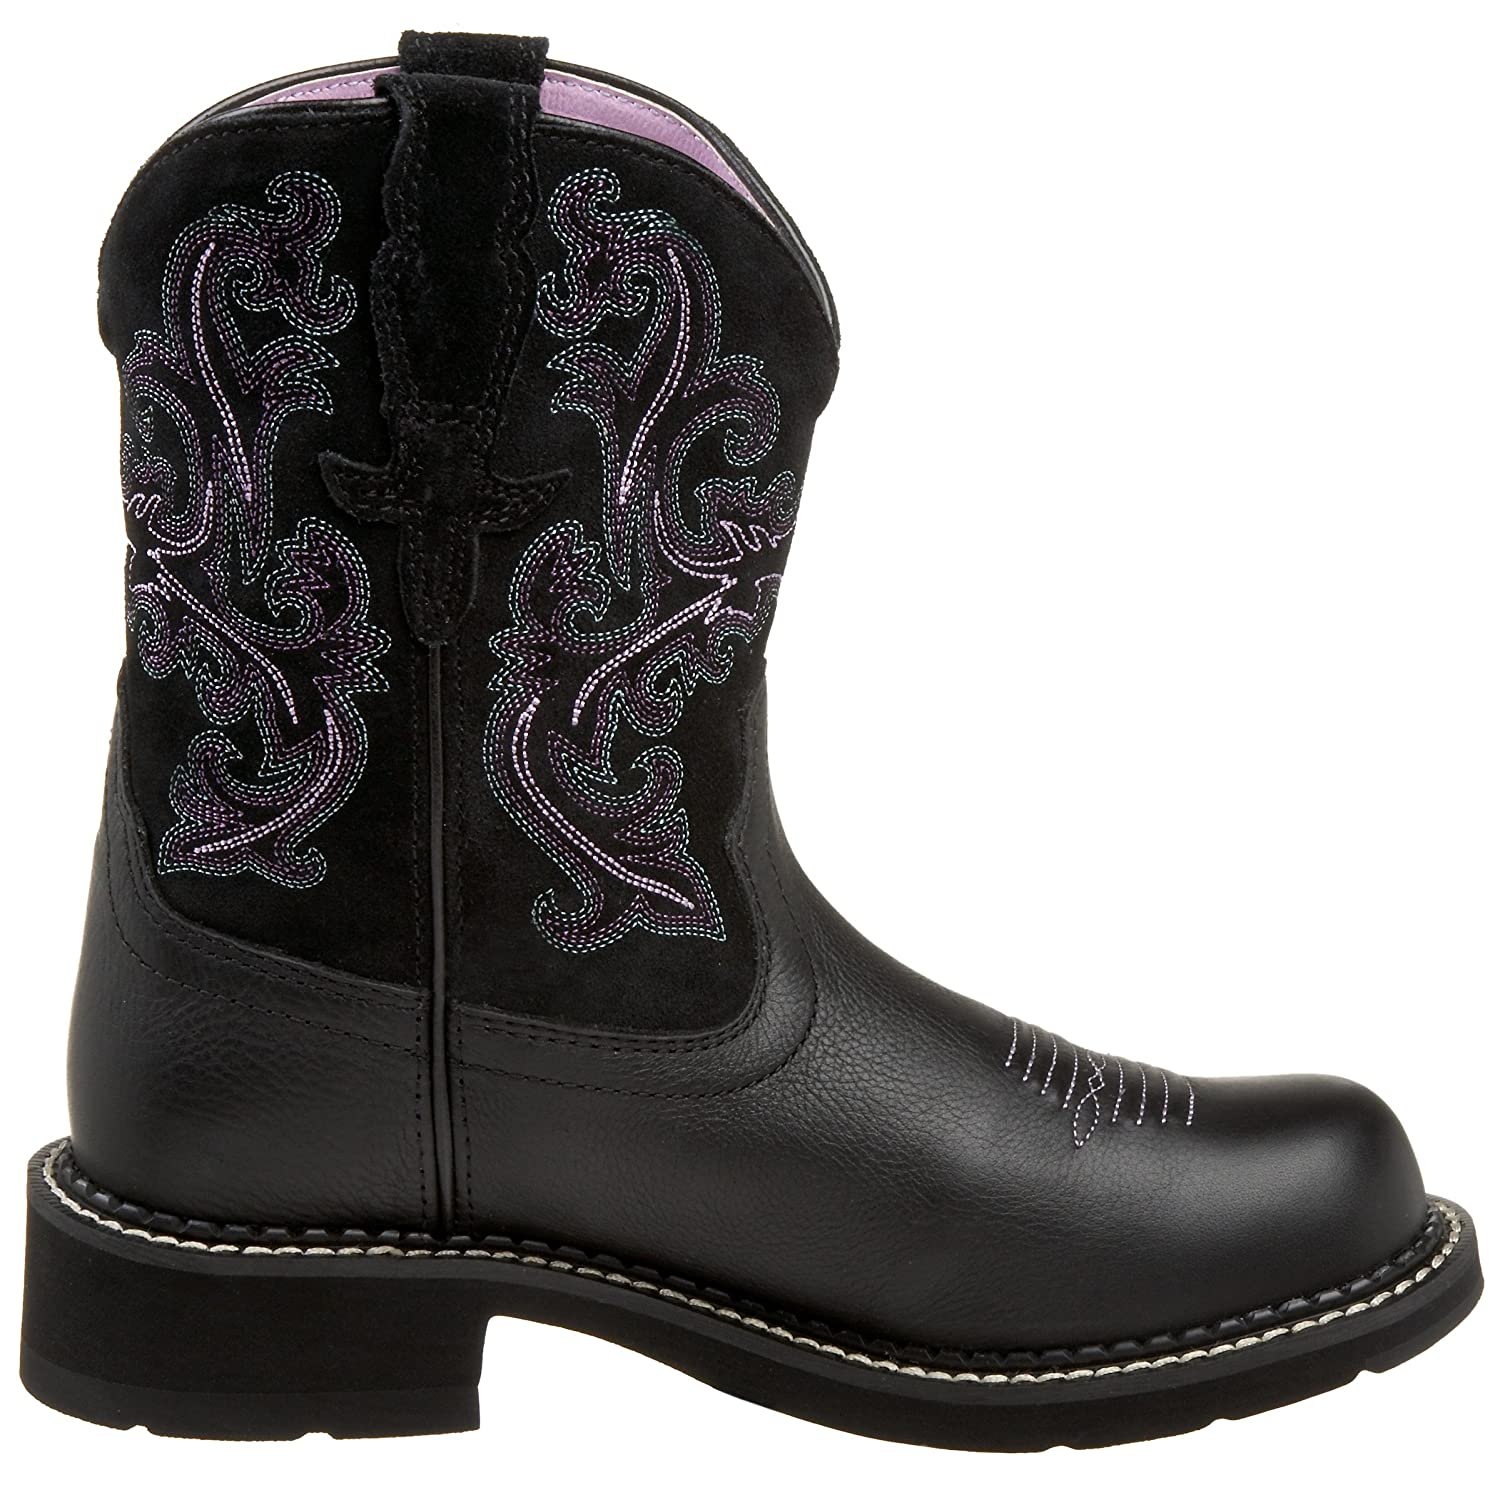 Ariat Women Women's Fatbaby Collection Western Cowboy Boot B0028AE696 7.5 B(M) US|Black Deertan/Orchid